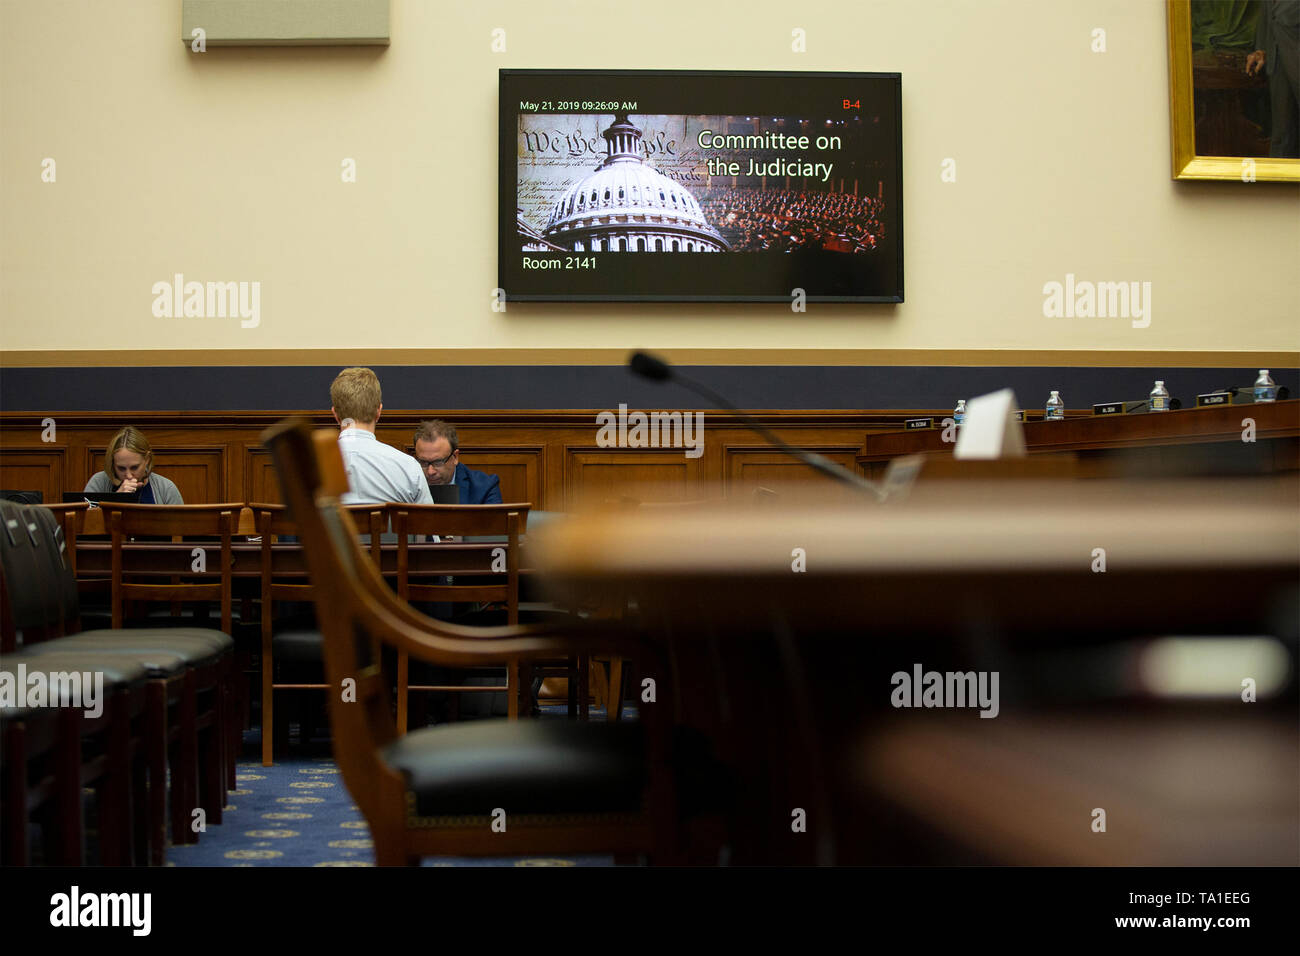 An empty chair meant for Former Counsel to the President Don McGahn sits in the House Judiciary Committee hearing room on Capitol Hill in Washington D.C. on Tuesday, May 21, 2019.  McGahn defied a subpoena from the House Judiciary Committee, which pushed Committee chairman, United States Representative Jerrold Nadler (Democrat of New York), to state that the committee would charge him with contempt.  Credit: Stefani Reynolds / CNP /MediaPunch - Stock Image